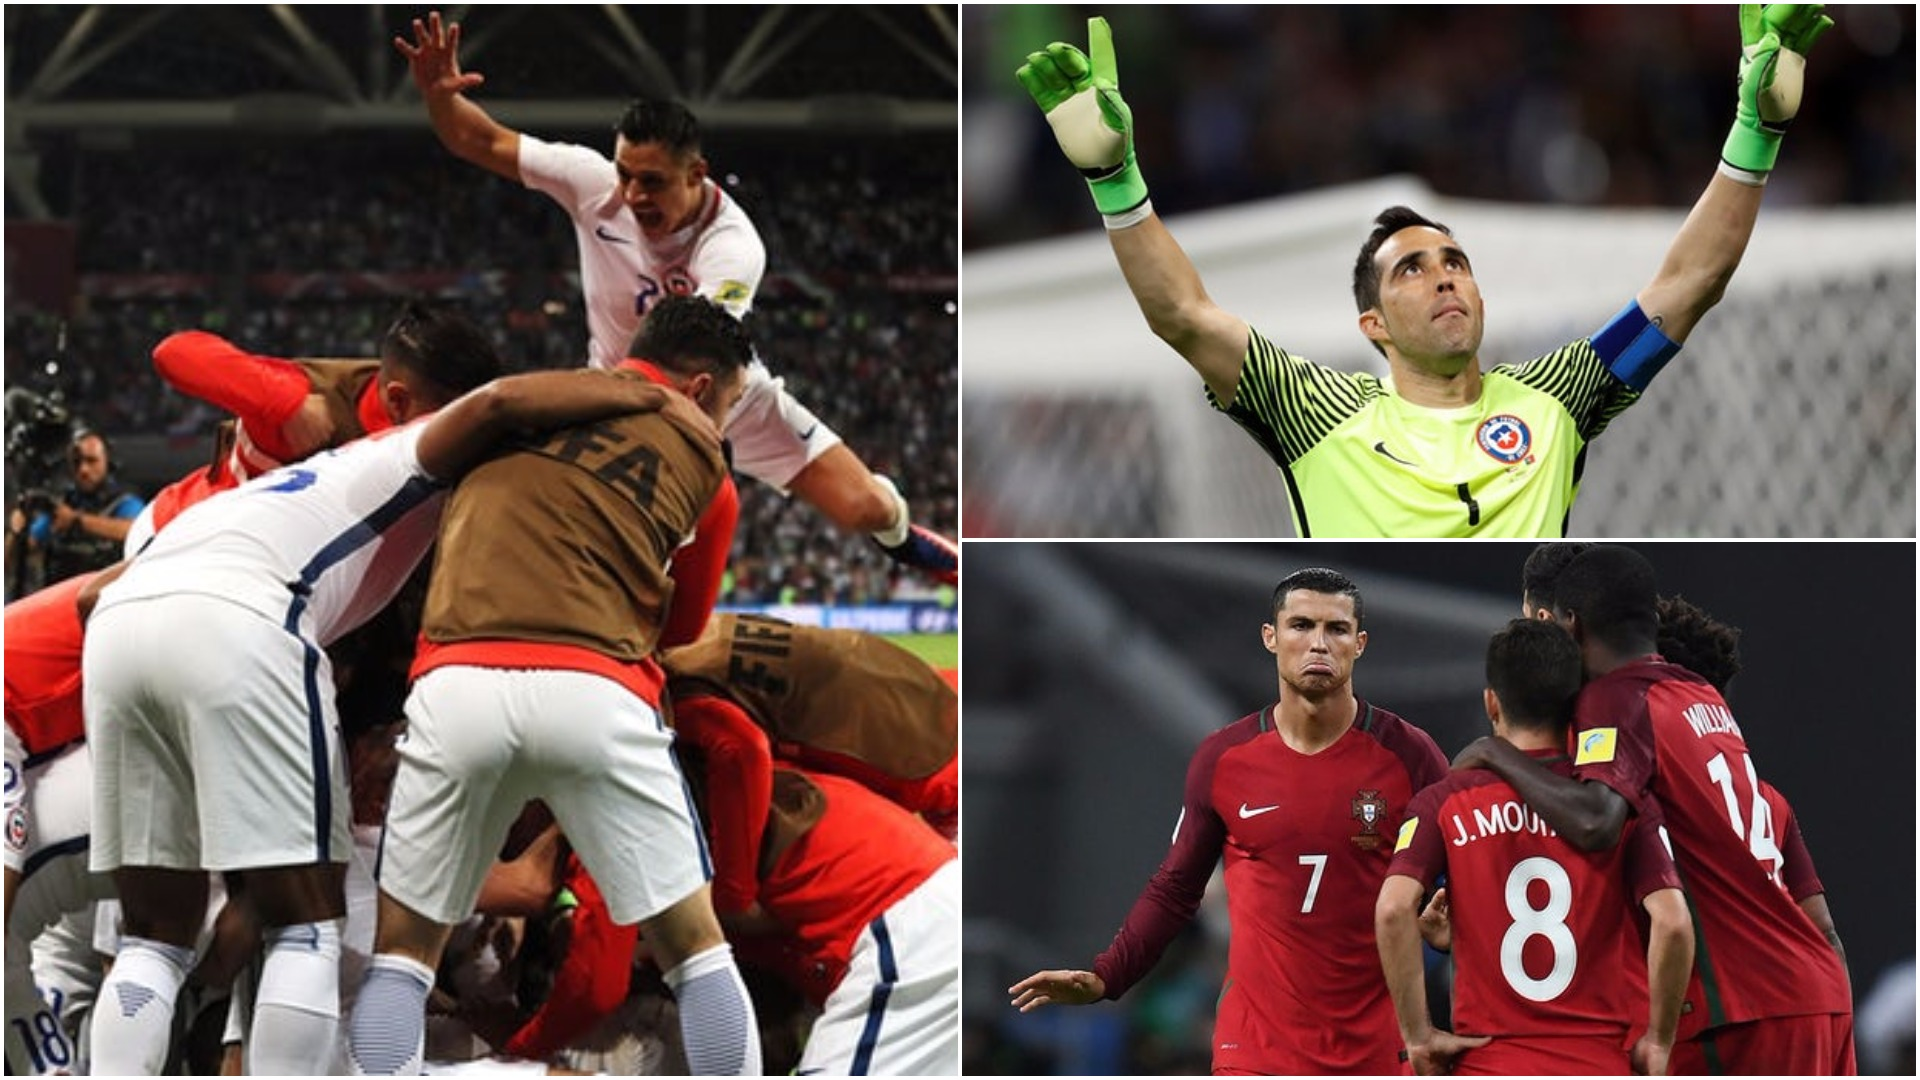 Bravo performance: Chile's keeper saves three penalties to send Portugal out of #ConfedCup